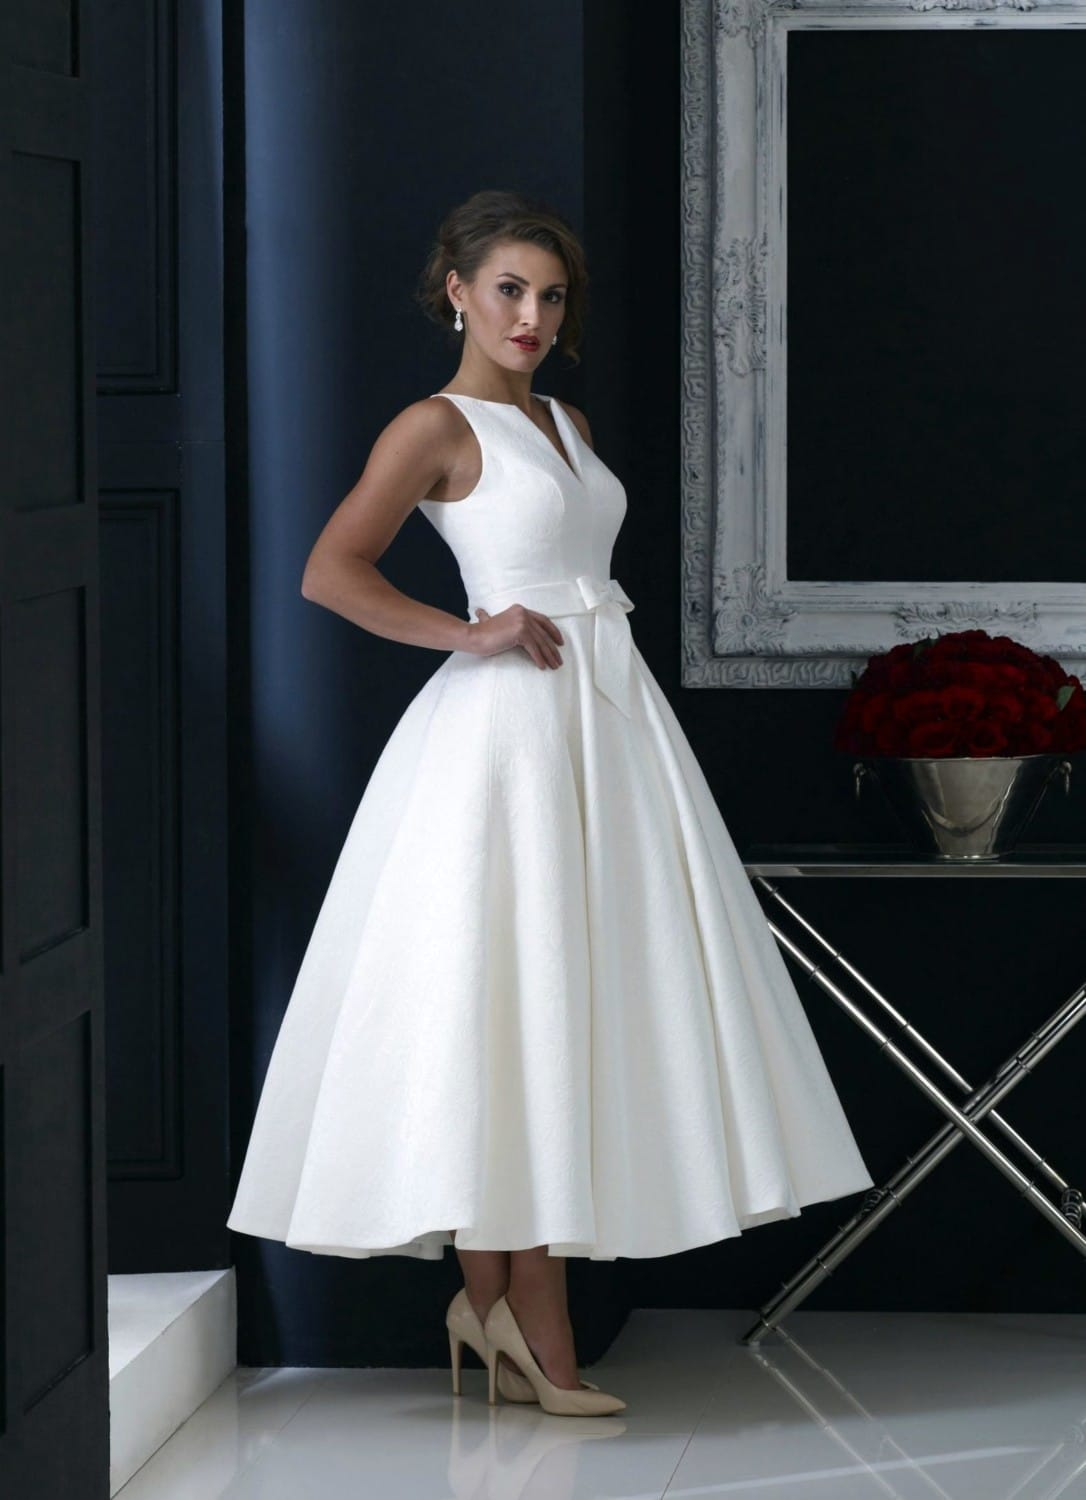 House of nicholas 2222 b sell my wedding dress online for Sell wedding dress online